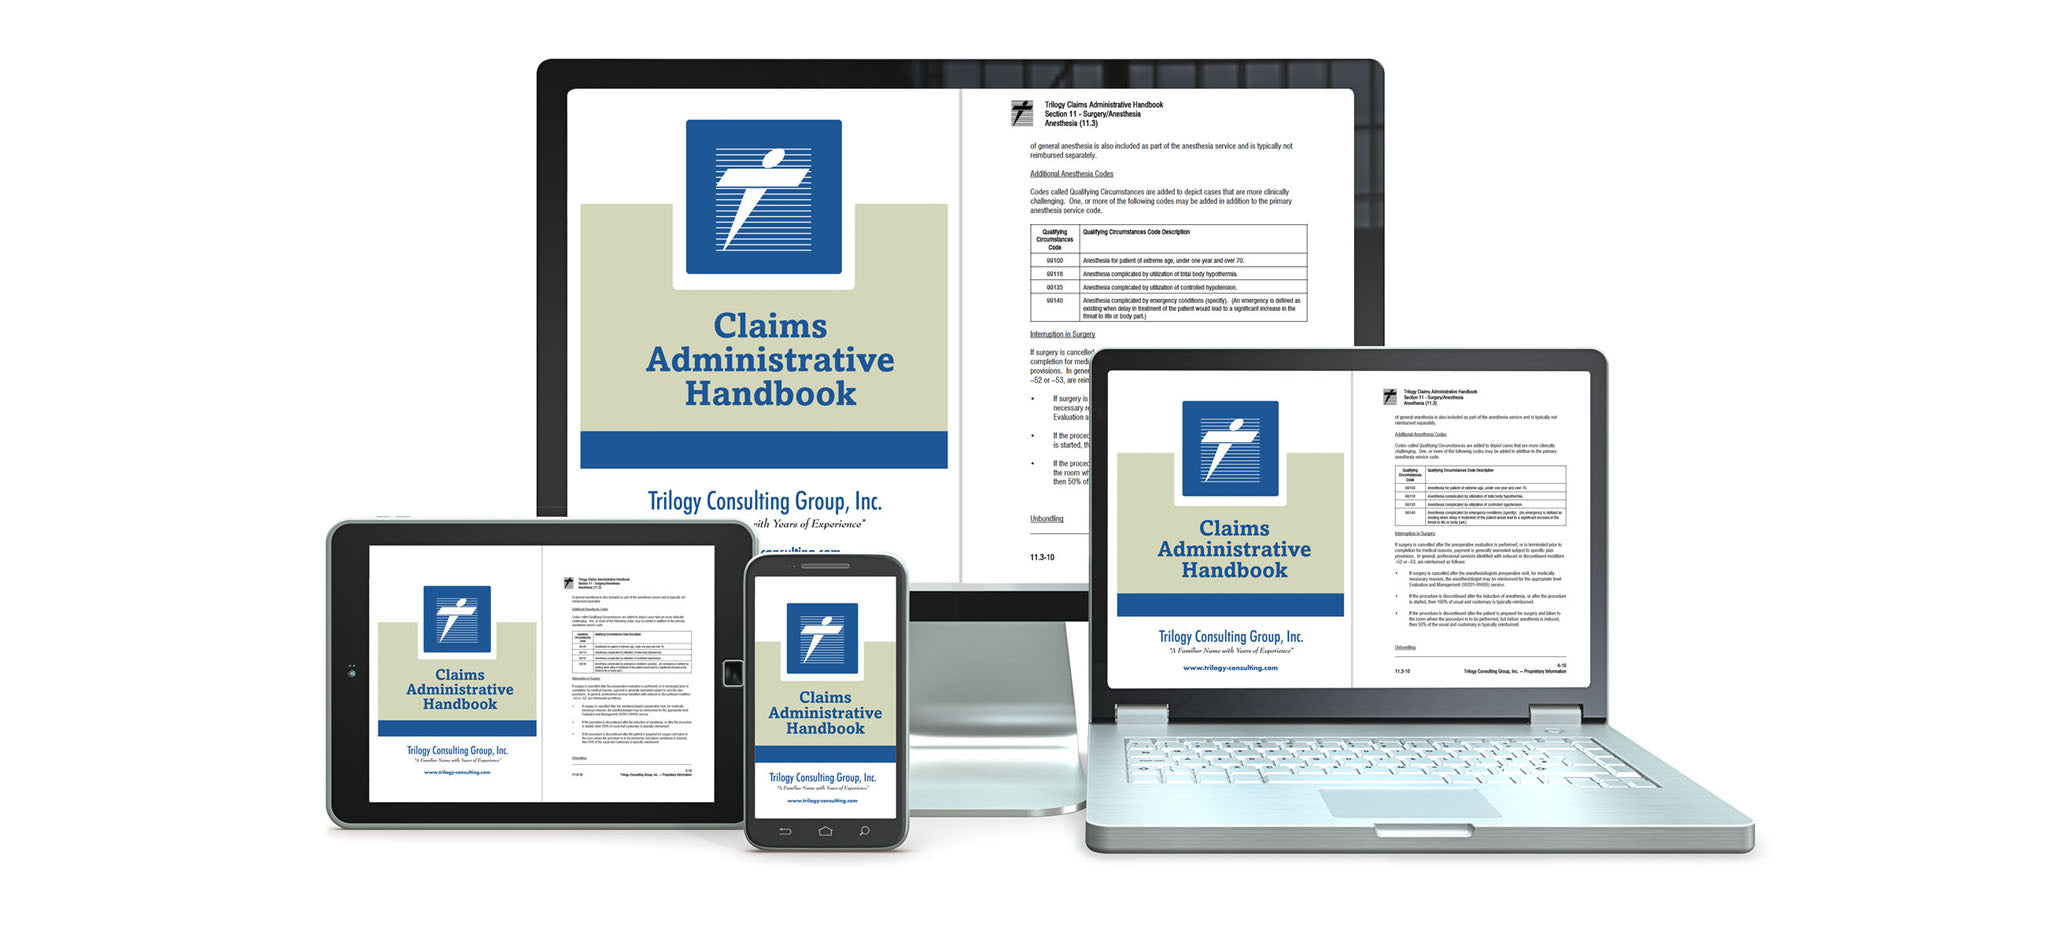 Image of the Trilogy Claims Administrative Handbook on several computer devices